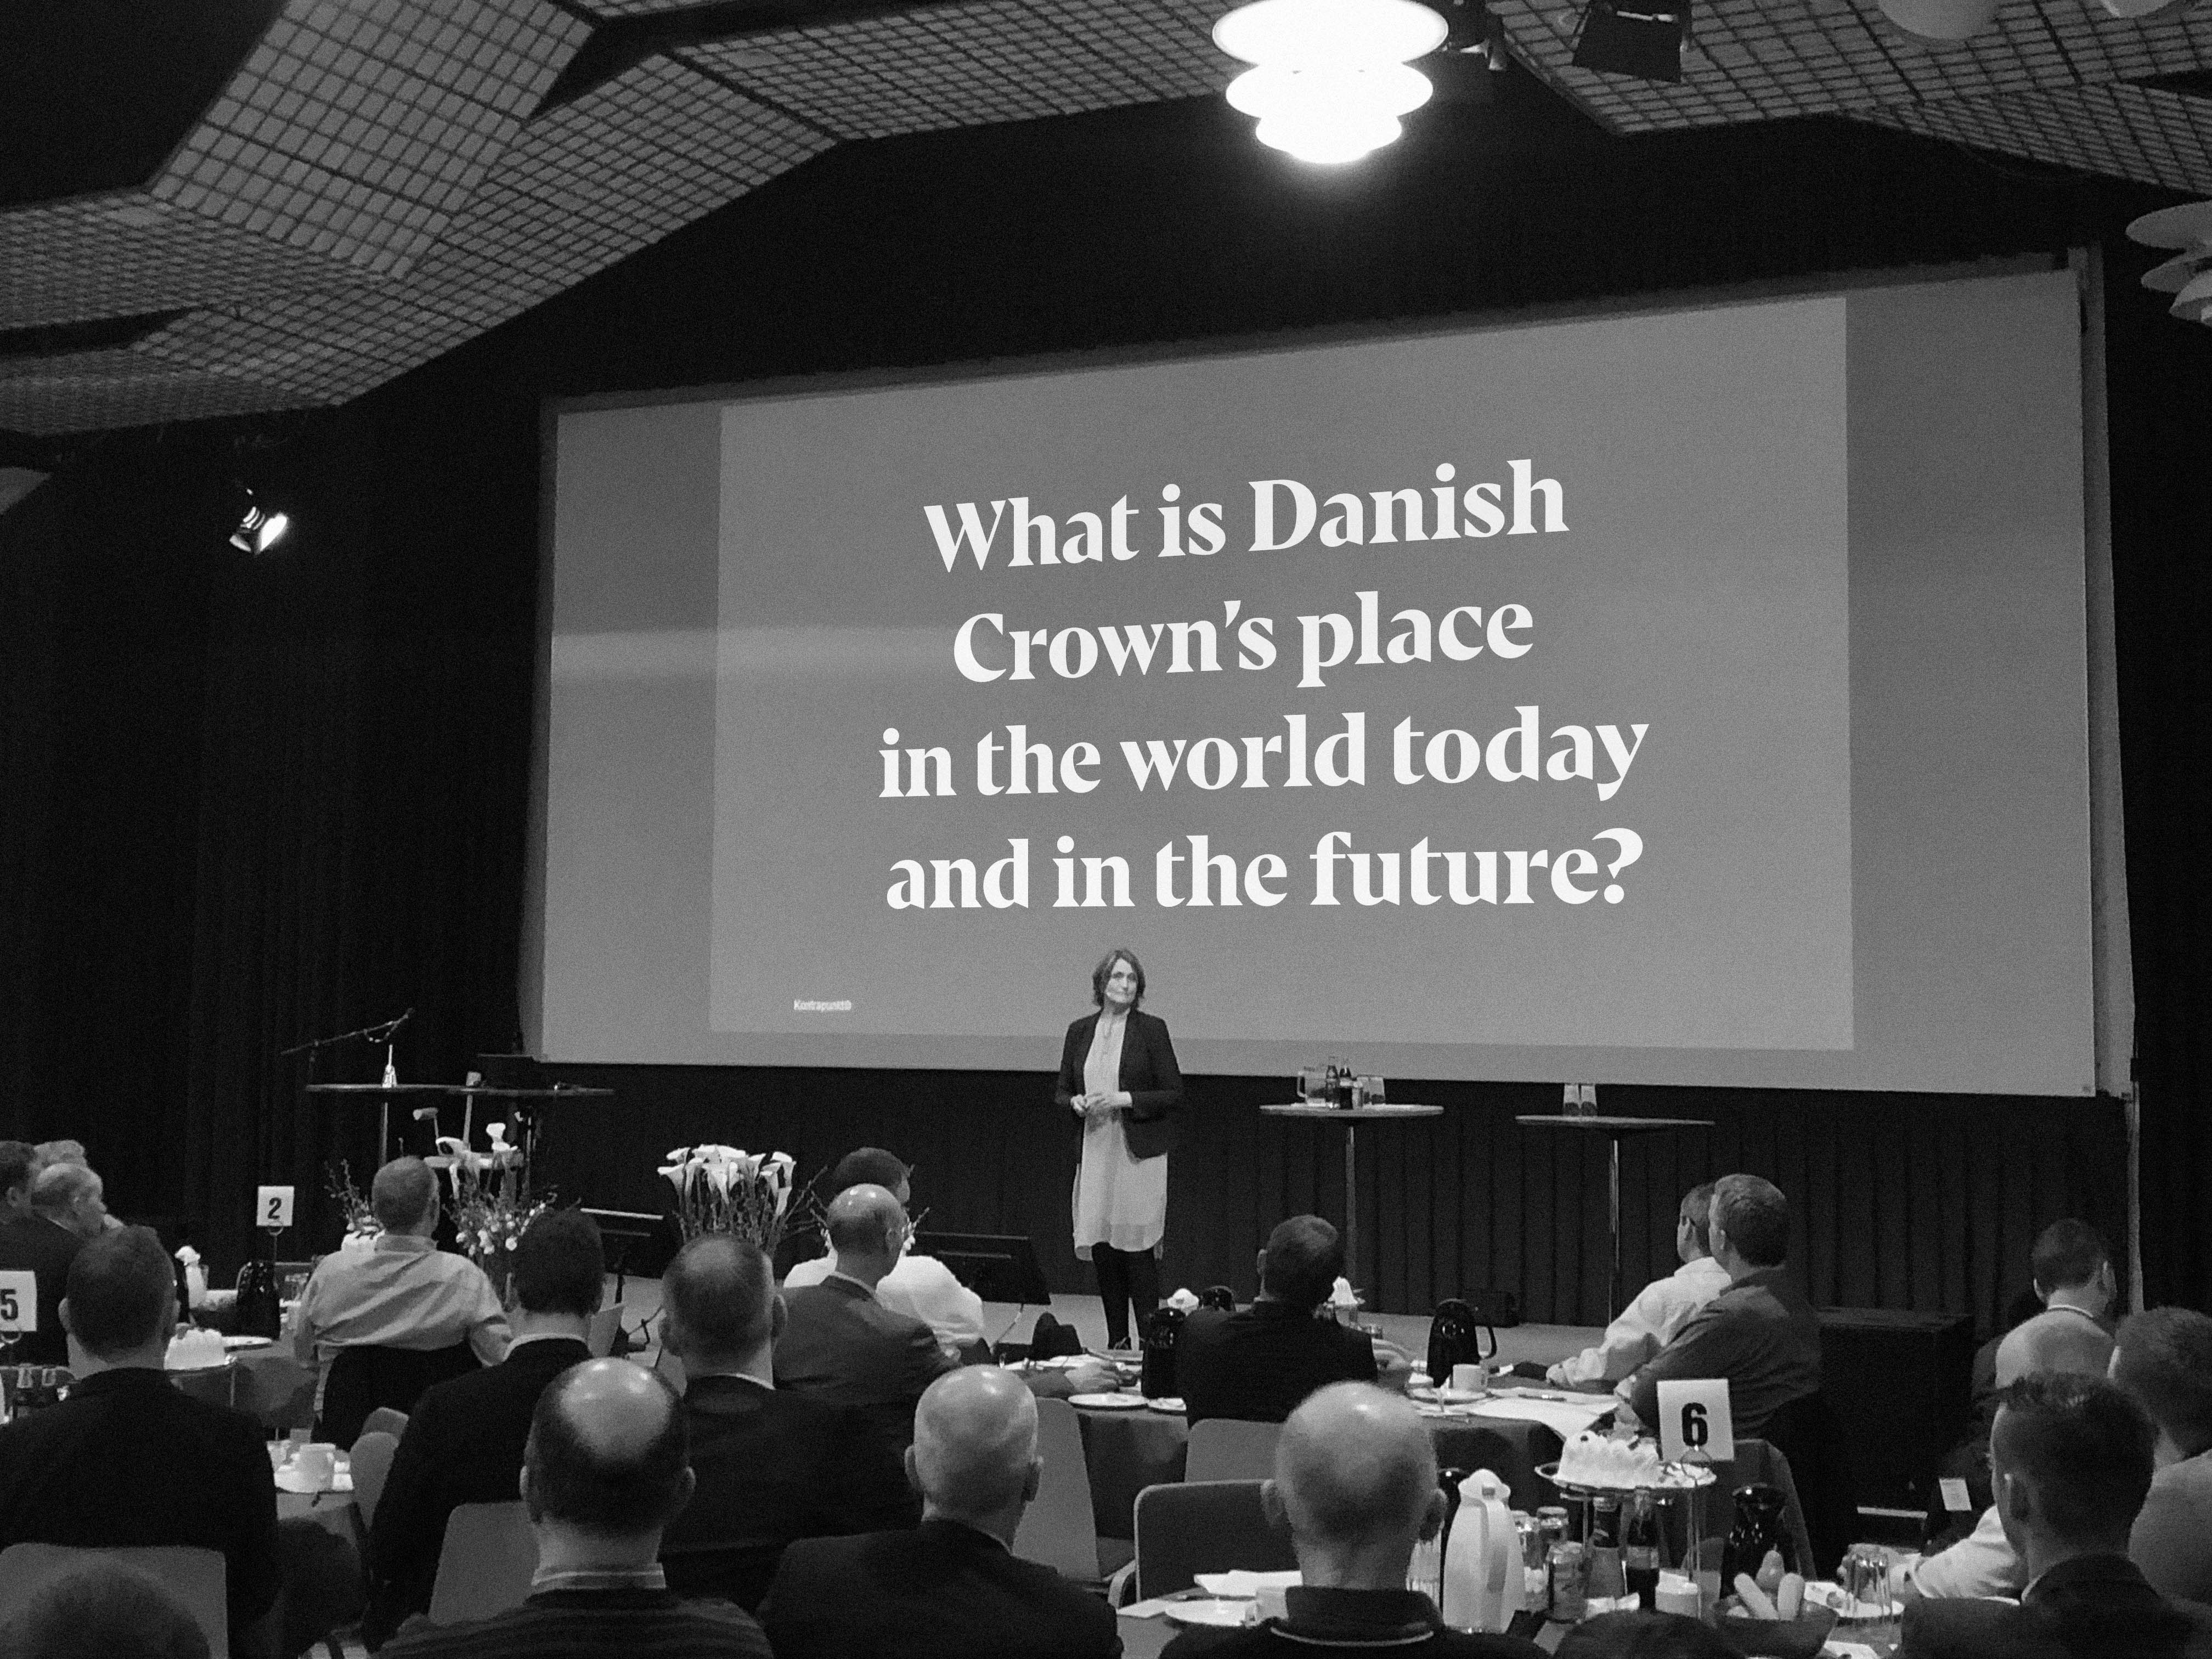 woman standing on stage with backdrop that says What is Danish Crown's place in the world today and the future?